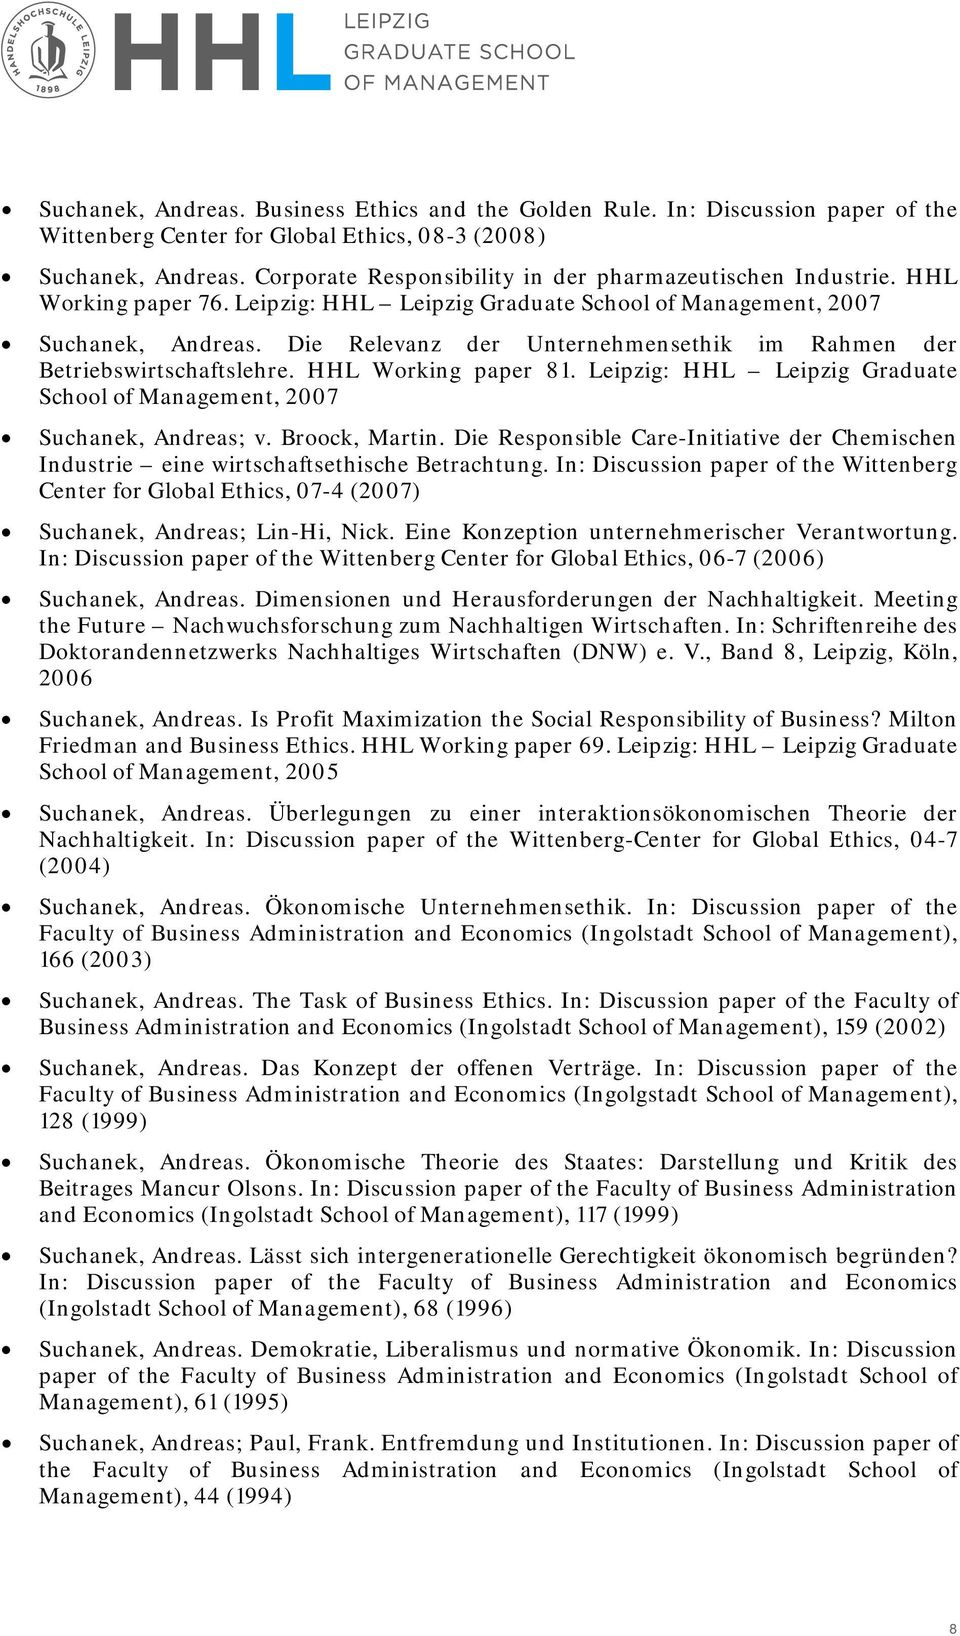 Die Relevanz der Unternehmensethik im Rahmen der Betriebswirtschaftslehre. HHL Working paper 81. Leipzig: HHL Leipzig Graduate School of Management, 2007 Suchanek, Andreas; v. Broock, Martin.